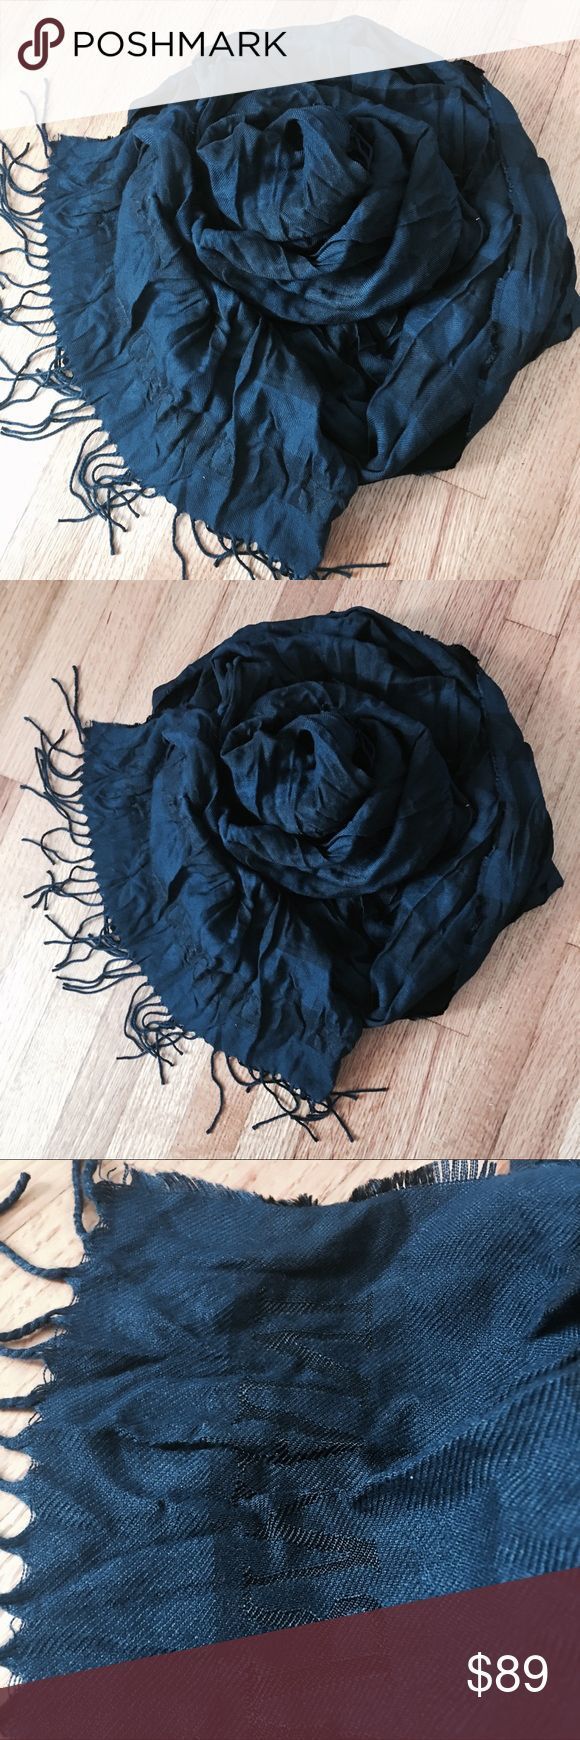 """EMPORIO ARMANI Black & Navy Crinkle Shawl BEAUTIFUL and Authentic crinkle wrap/shawl from Emporio Armani. Navy blue and black striped pattern with designer name within design at each end. Nice large size at 28-32"""" wide and 75 inches long. 28"""" wide with crinkles and approx 32"""" wide stretched flat. Fabric content is 46% polyester, 30% viscose and 24% acetate. No signs of wear. No runs or tears. MADE IN ITALY. Emporio Armani Accessories Scarves & Wraps"""